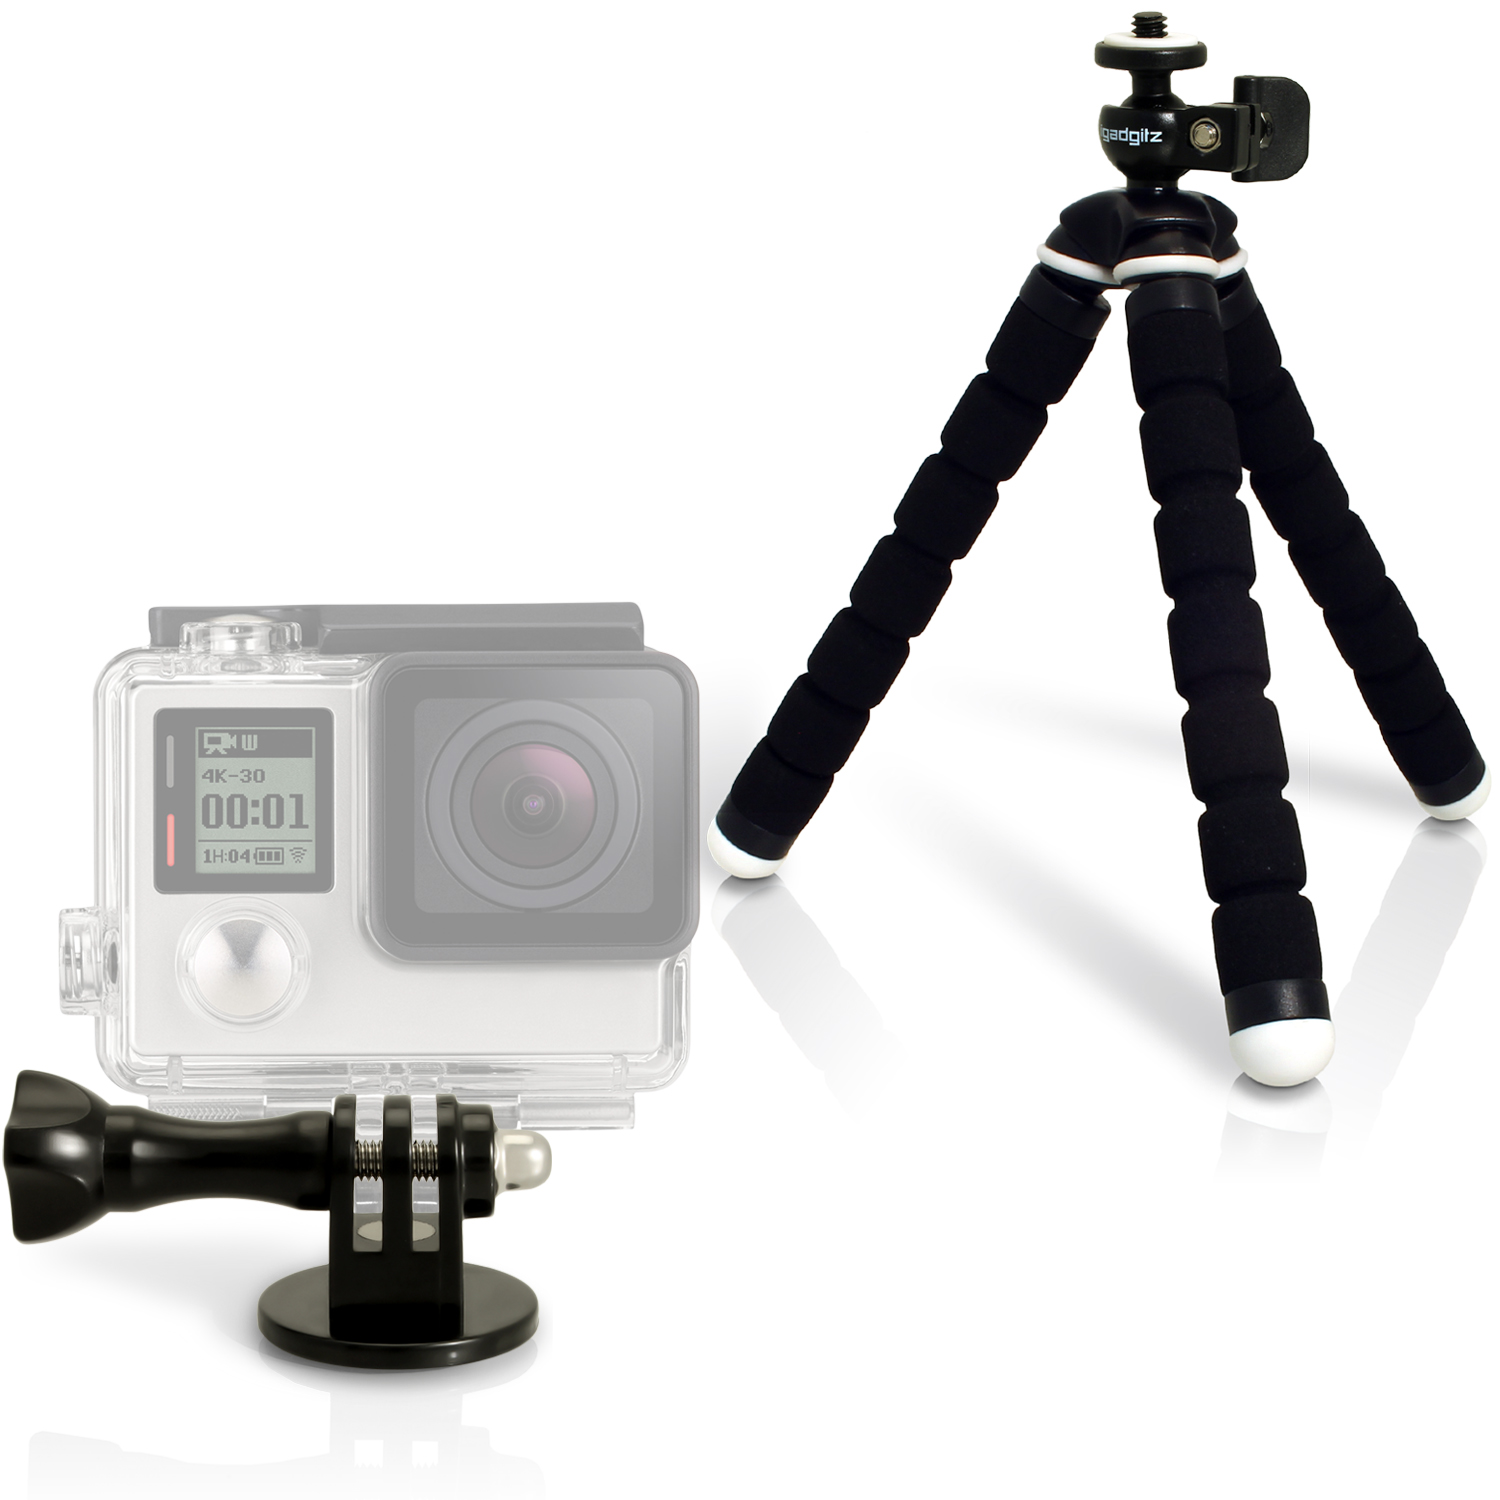 iGadgitz Small Universal Foam Mini Tripod and Adaptor Mount for GoPro Hero6 Black, Fusion, Hero5 Black, Hero5 Session, Hero4, Hero3+, Hero3, Hero2, Hero1, Hero Session